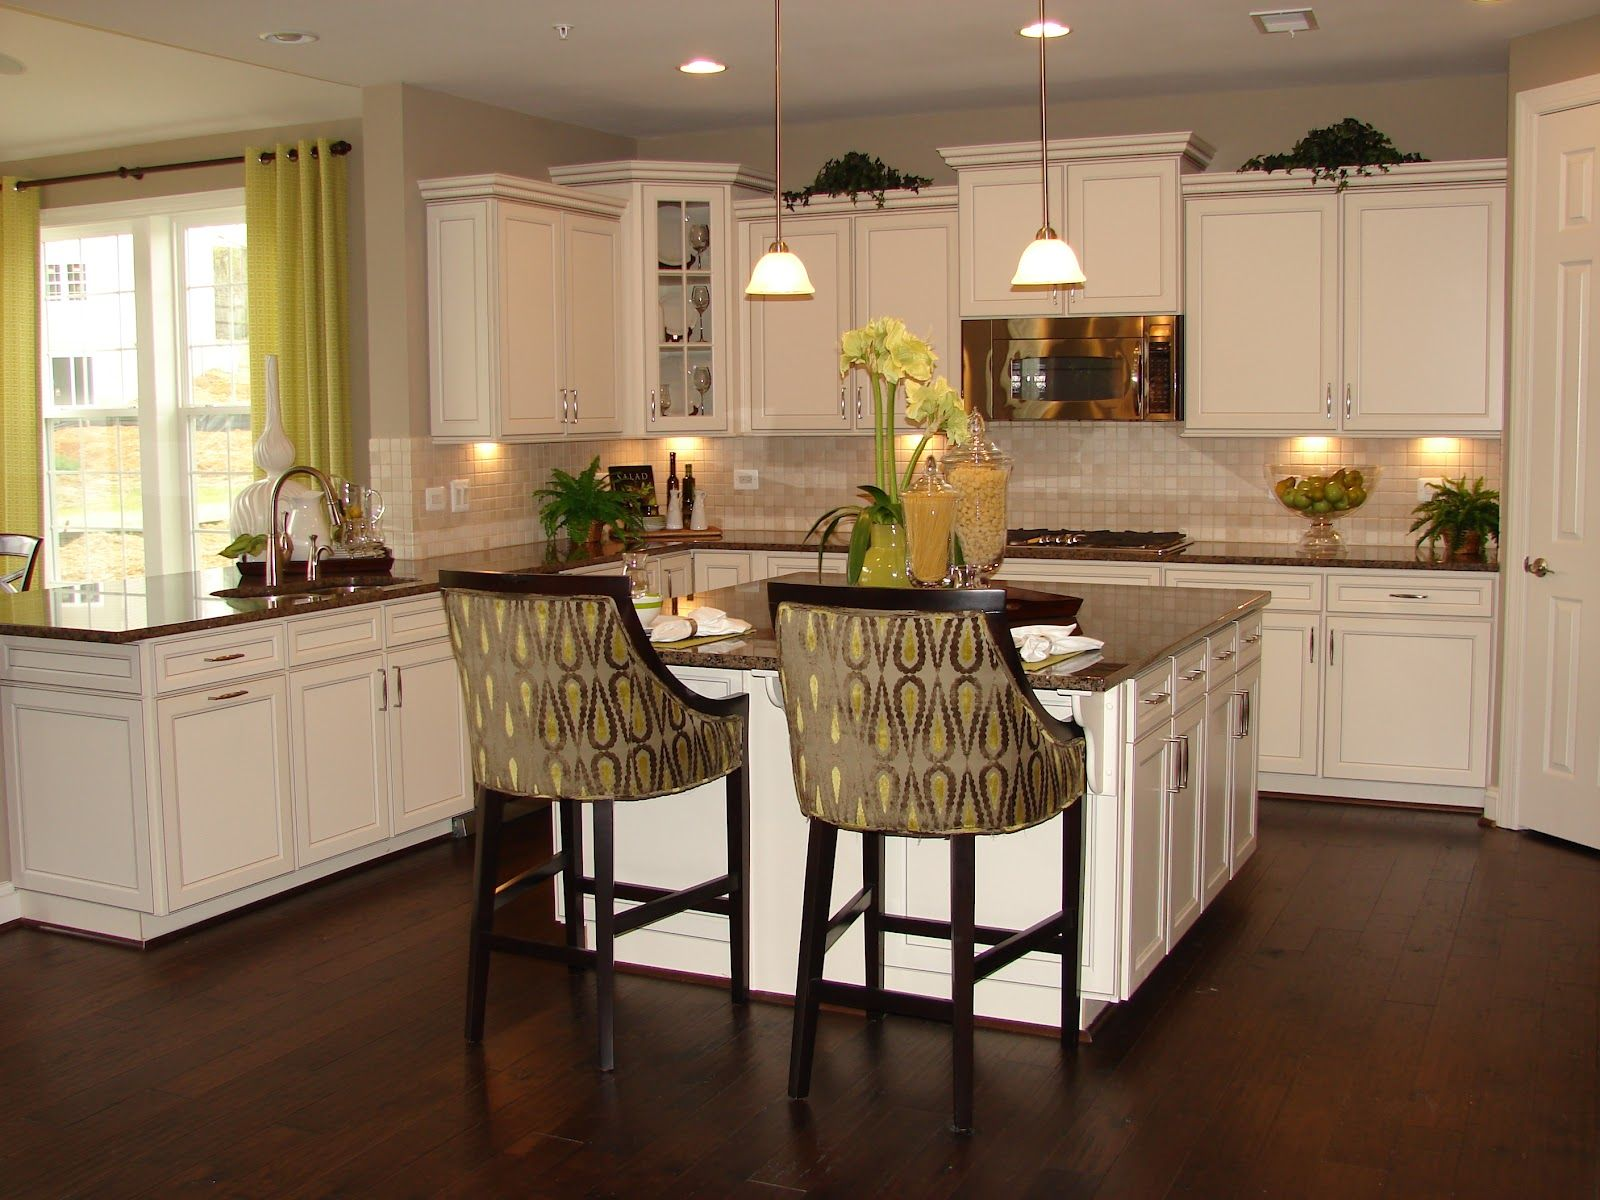 kitchen white cabinet kitchen pictures of kitchens with white cabinets this is my dream kitchen but it is a